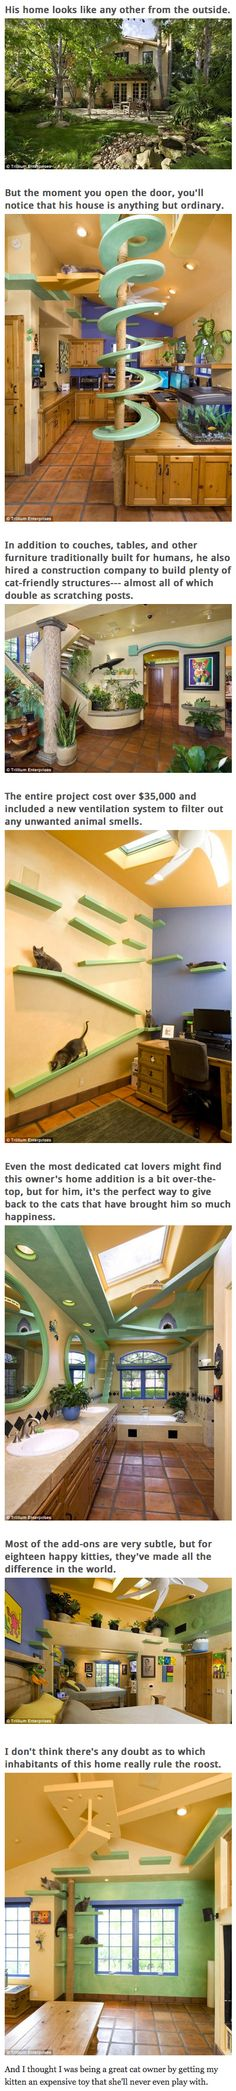 A man with 18 cats decided to turn his home into a feline paradise, adding in colorful ramps, walkways and tunnels for the animals to play on. The unidentified cat lover, whose house is located in Goleta, California, spent a whopping $35,000 on the renovation, which included the addition of a spiral walkway, tiny stairs to leading to various kitty ledges and climbing polls that double as scratching posts. More importantly, he also installed a new ventilation system to ensure that the air is…